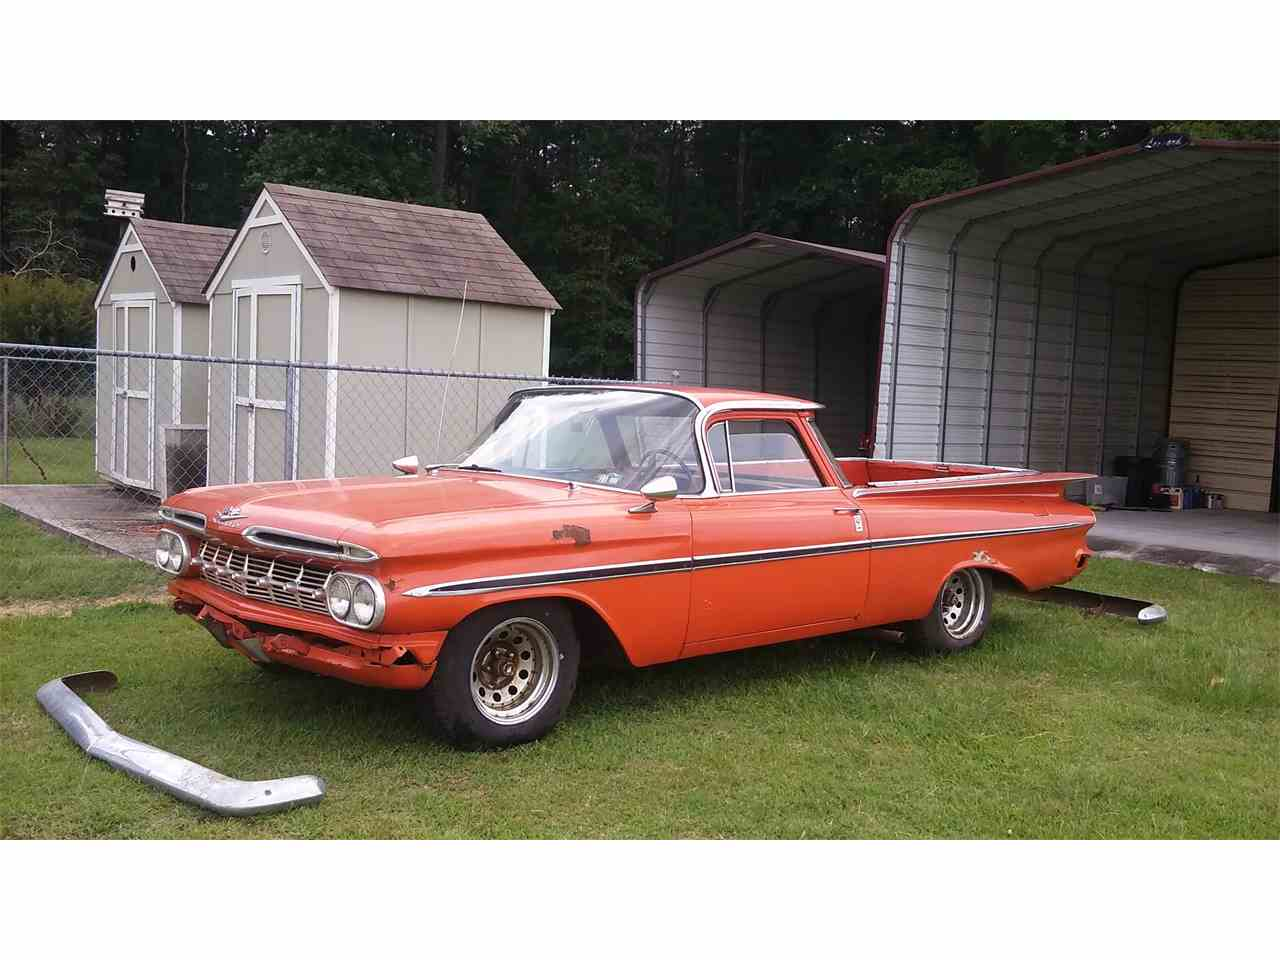 Large Picture of Classic 1959 El Camino located in South Carolina - $9,500.00 Offered by a Private Seller - IWY1